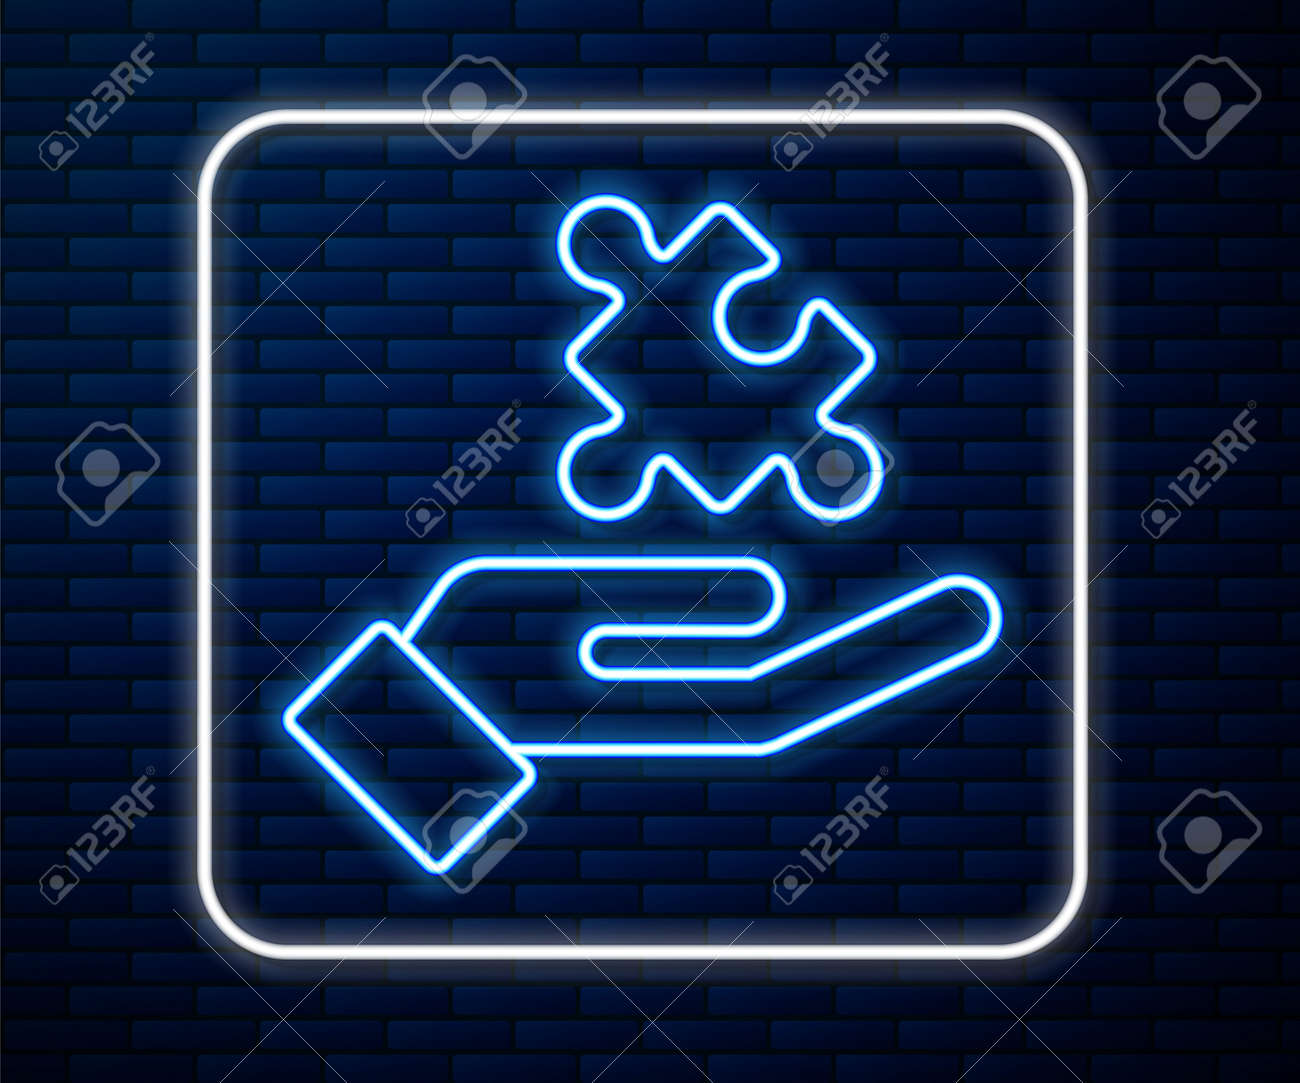 Glowing Neon Line Solution To The Problem In Psychology Icon Royalty Free Cliparts Vectors And Stock Illustration Image 161202341